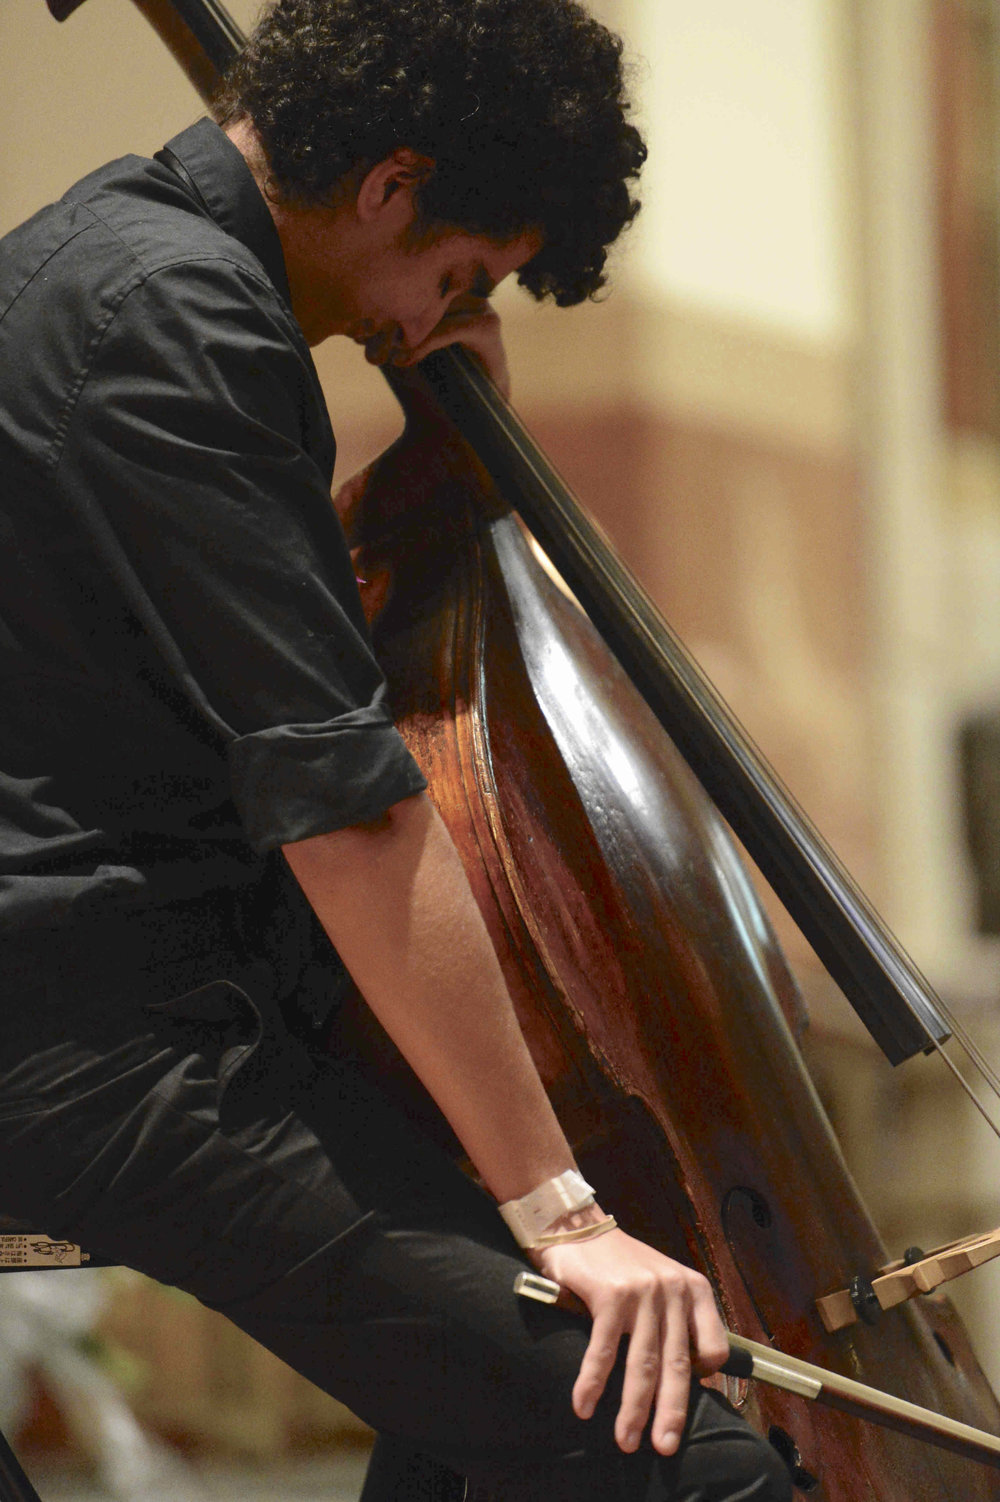 Matthew Peralta plays the cello at his father's funeral. //  Eagle  photo by Todd Maisel